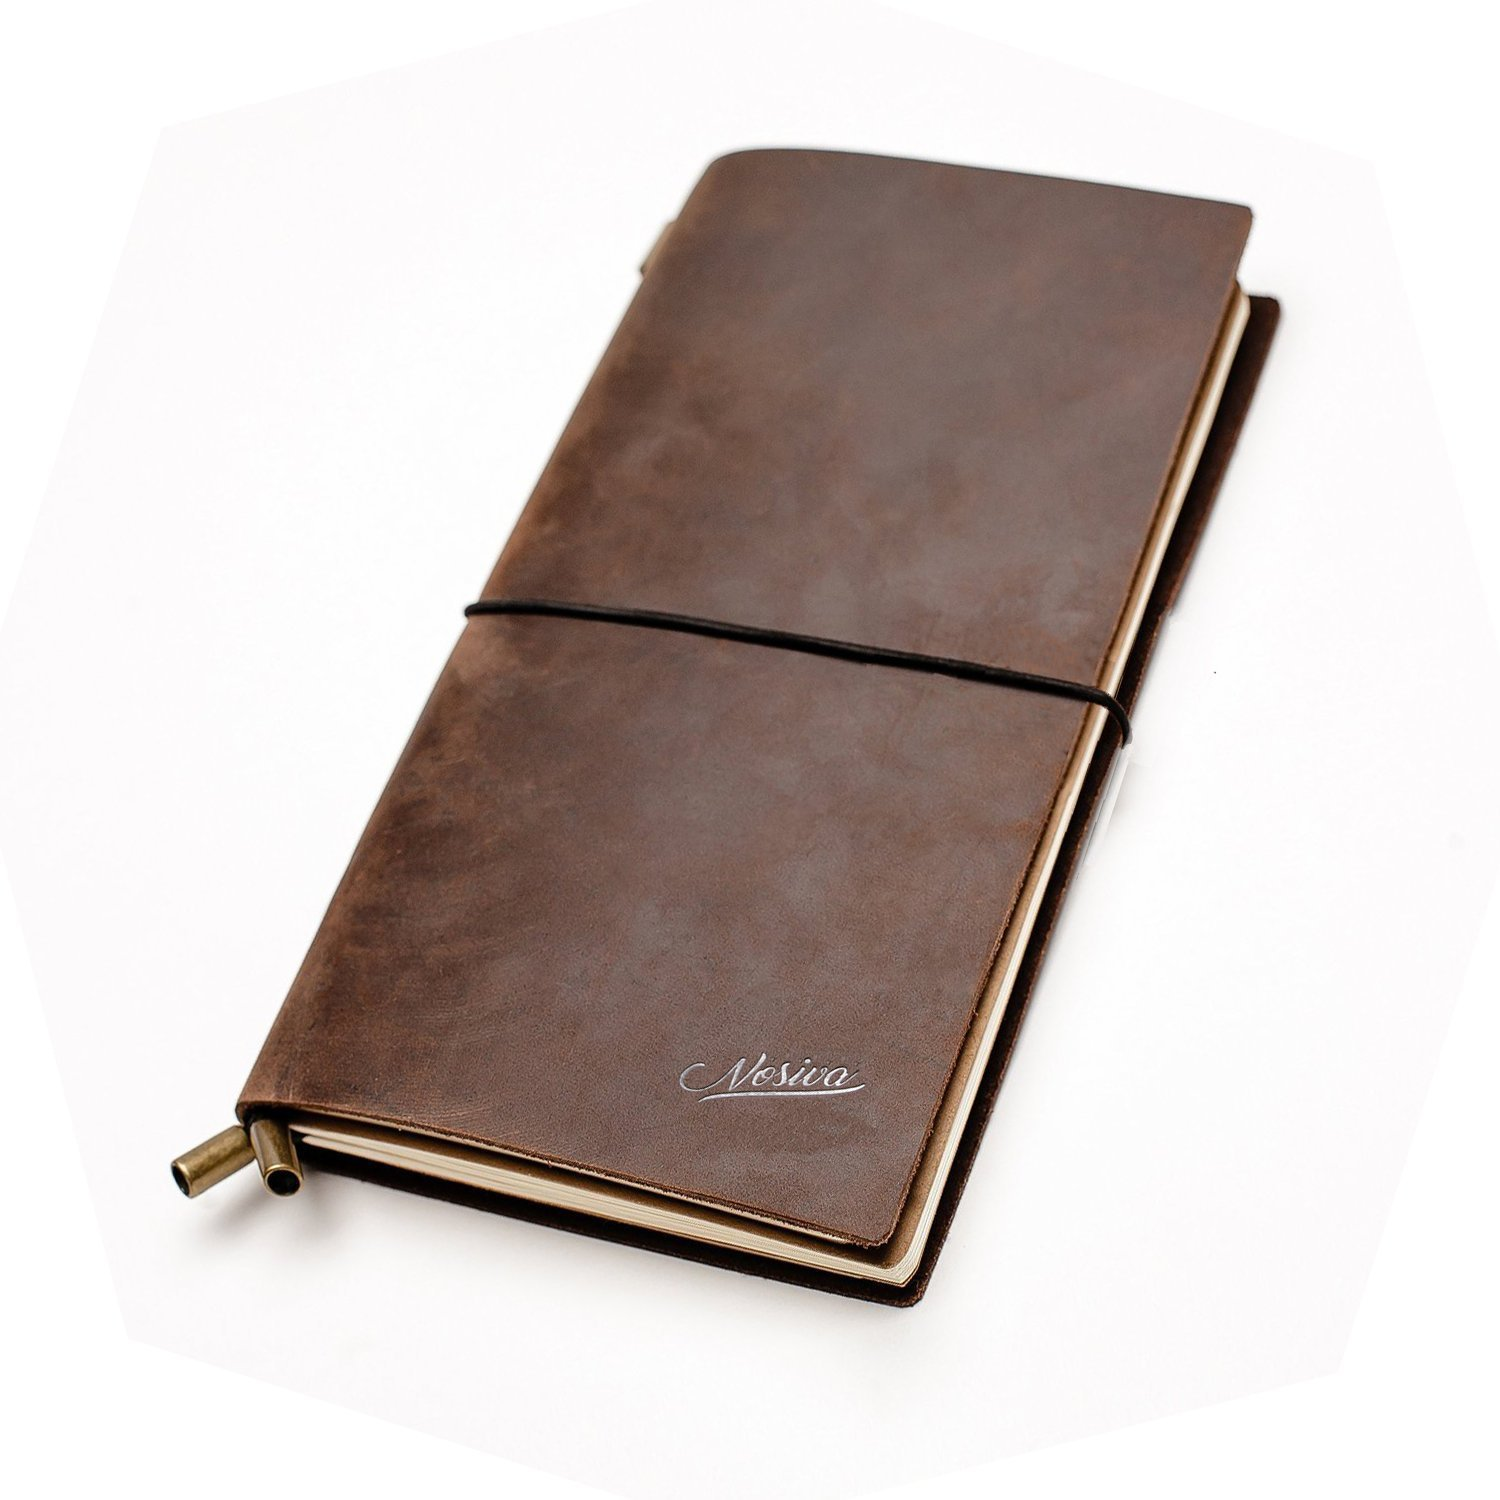 Old fashioned leather notebooks 1960s in Western fashion - Wikipedia